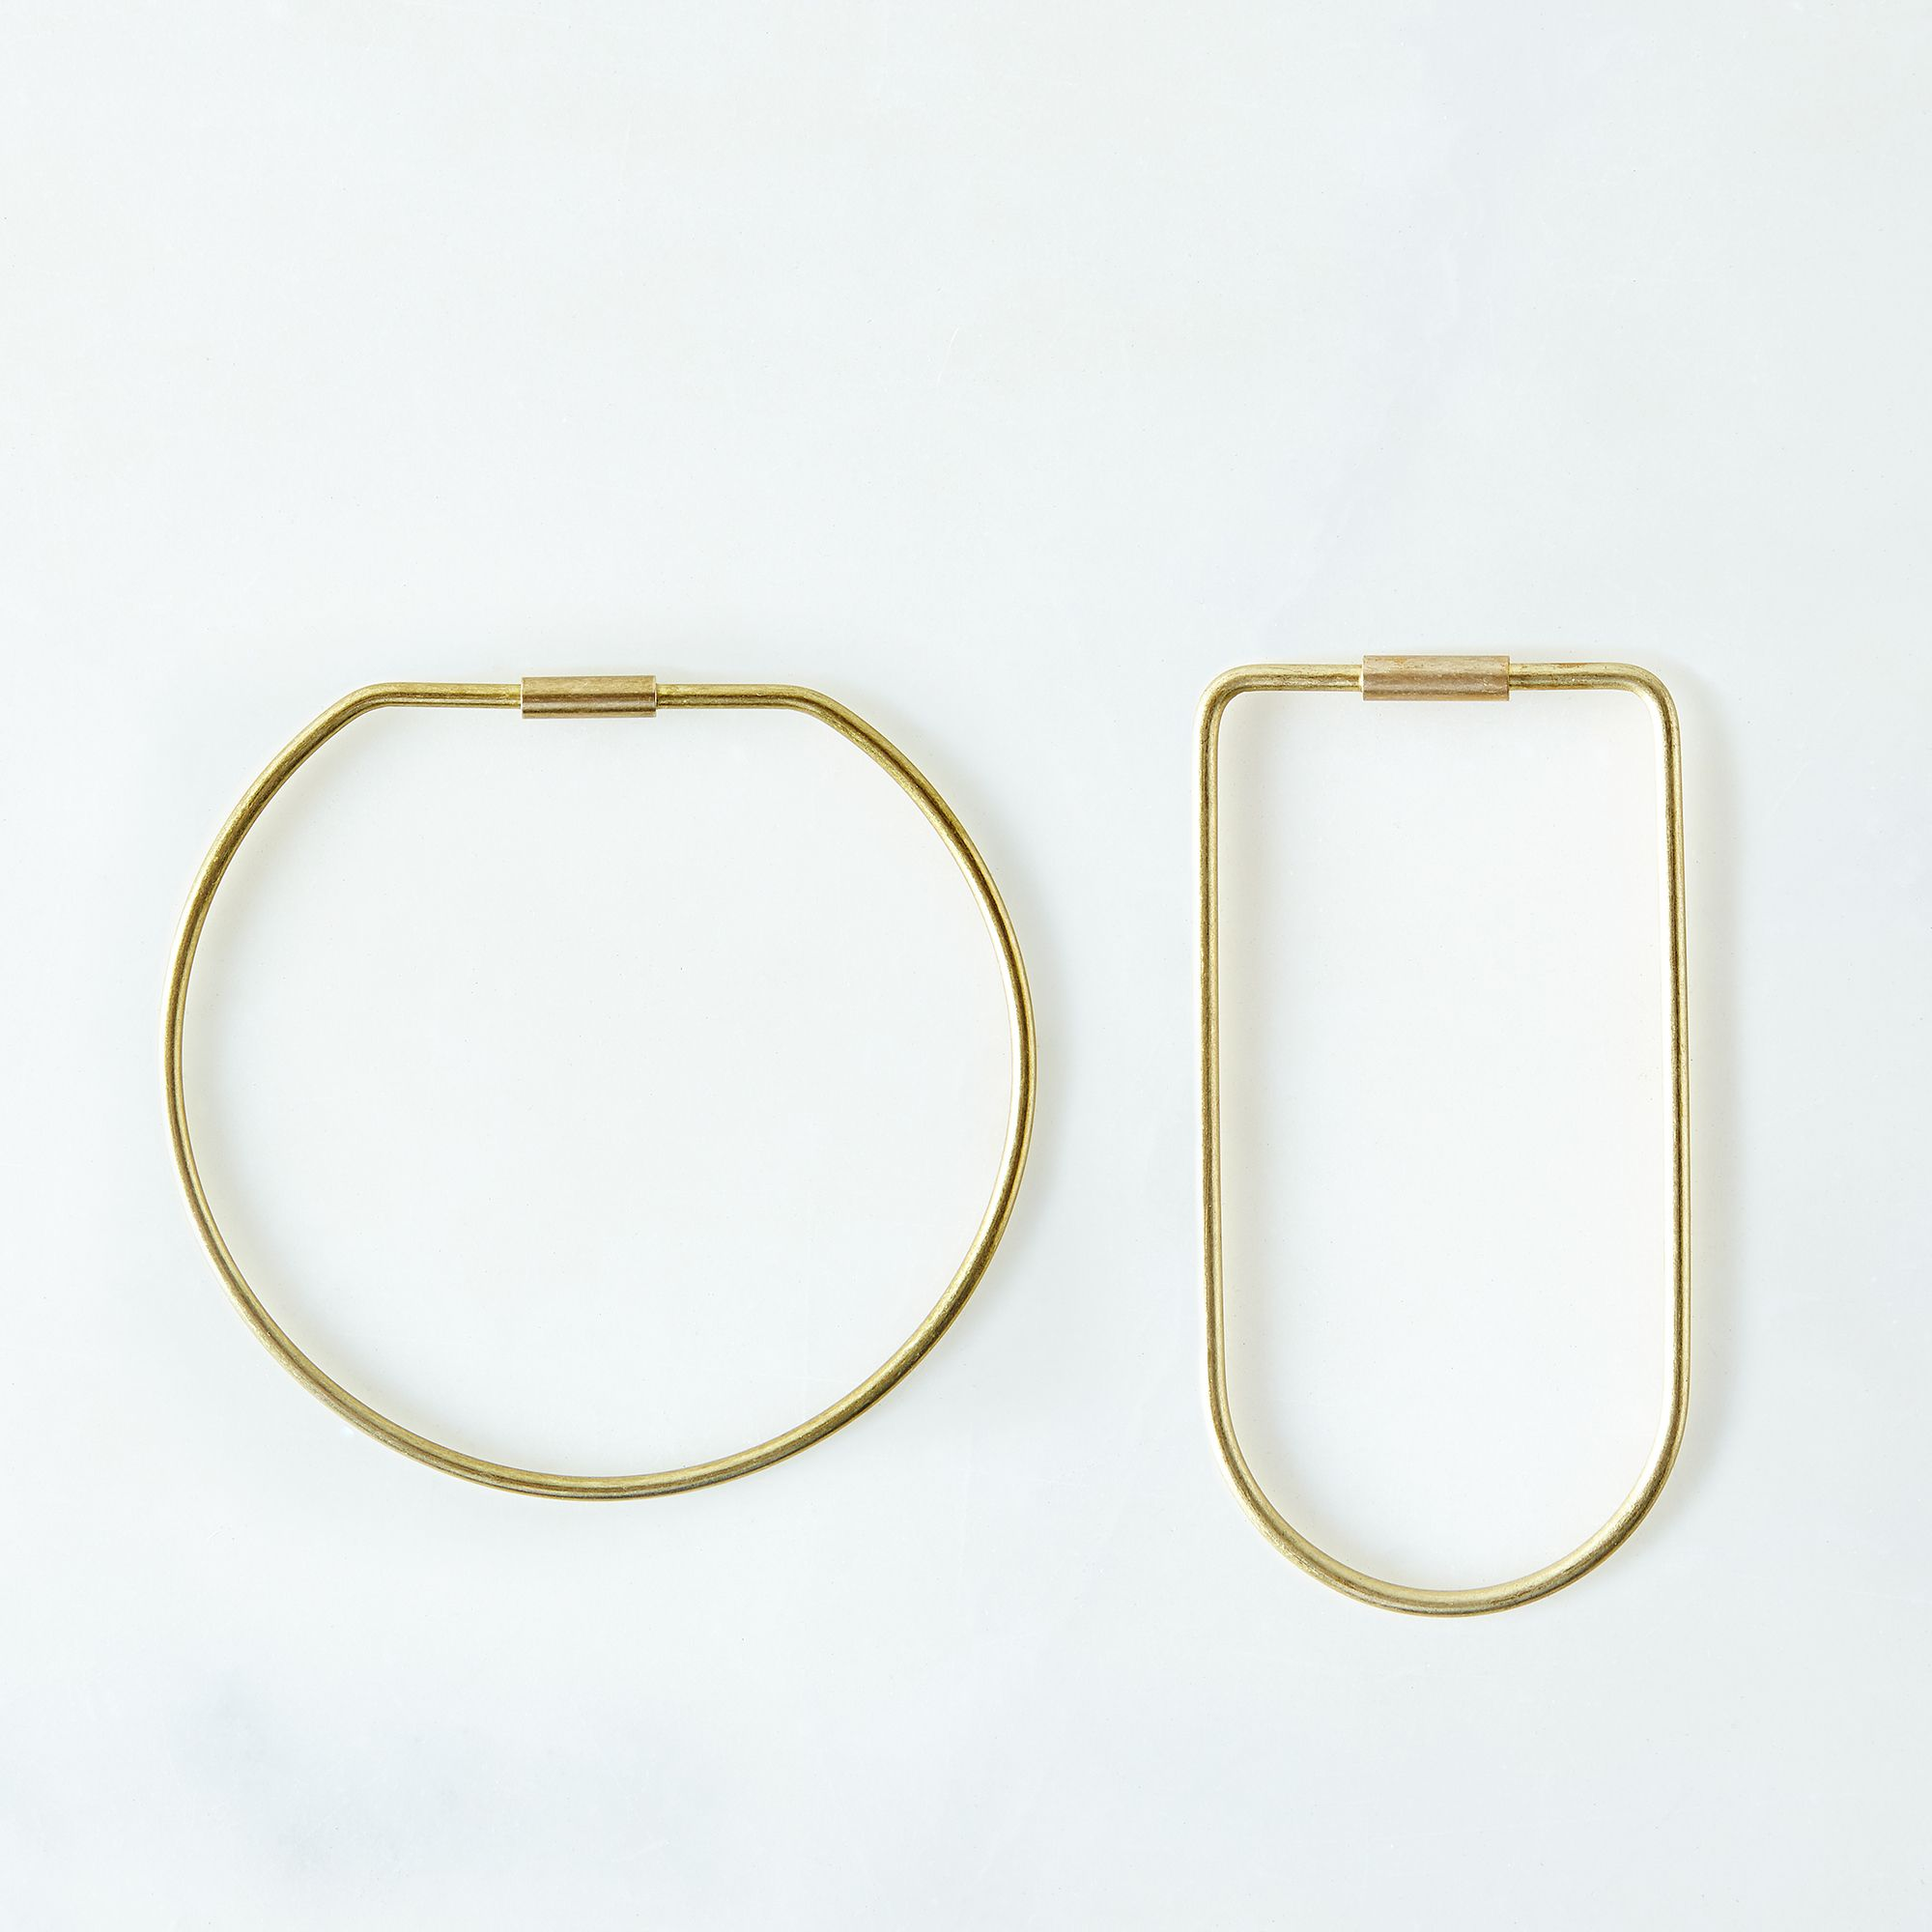 2ee37f42 a0f9 11e5 a190 0ef7535729df  2015 1104 areaware brass contour key ring hoop and bend silo rocky luten 006